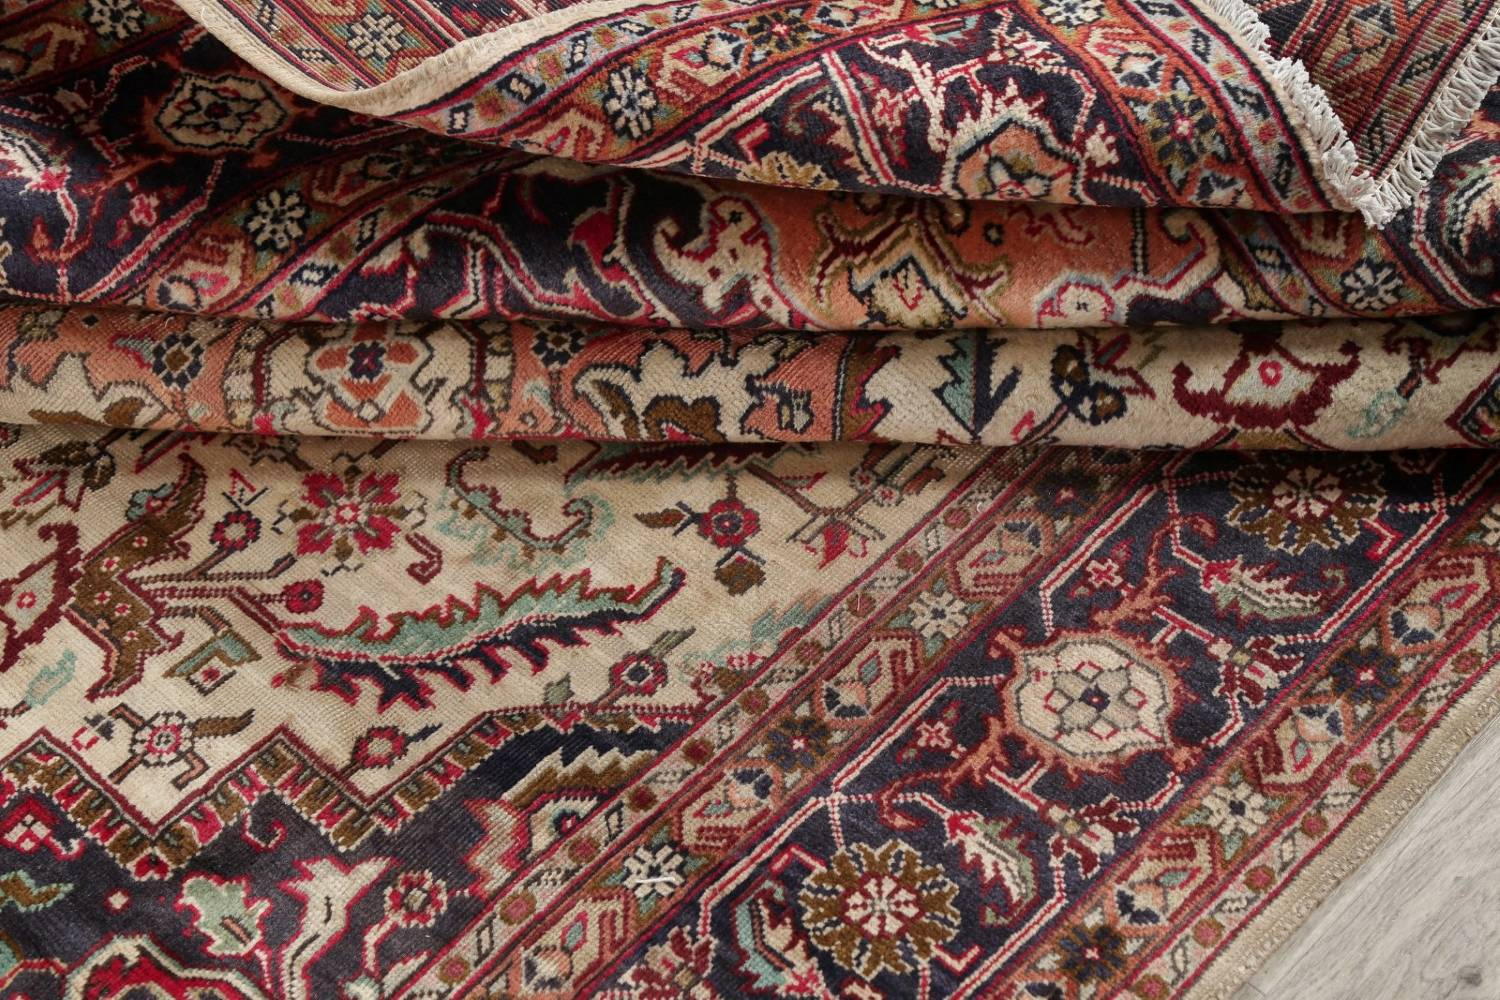 One-of-a-Kind Antique Heriz Serapi Persian Hand-Knotted 7x9 Wool Area Rug image 18